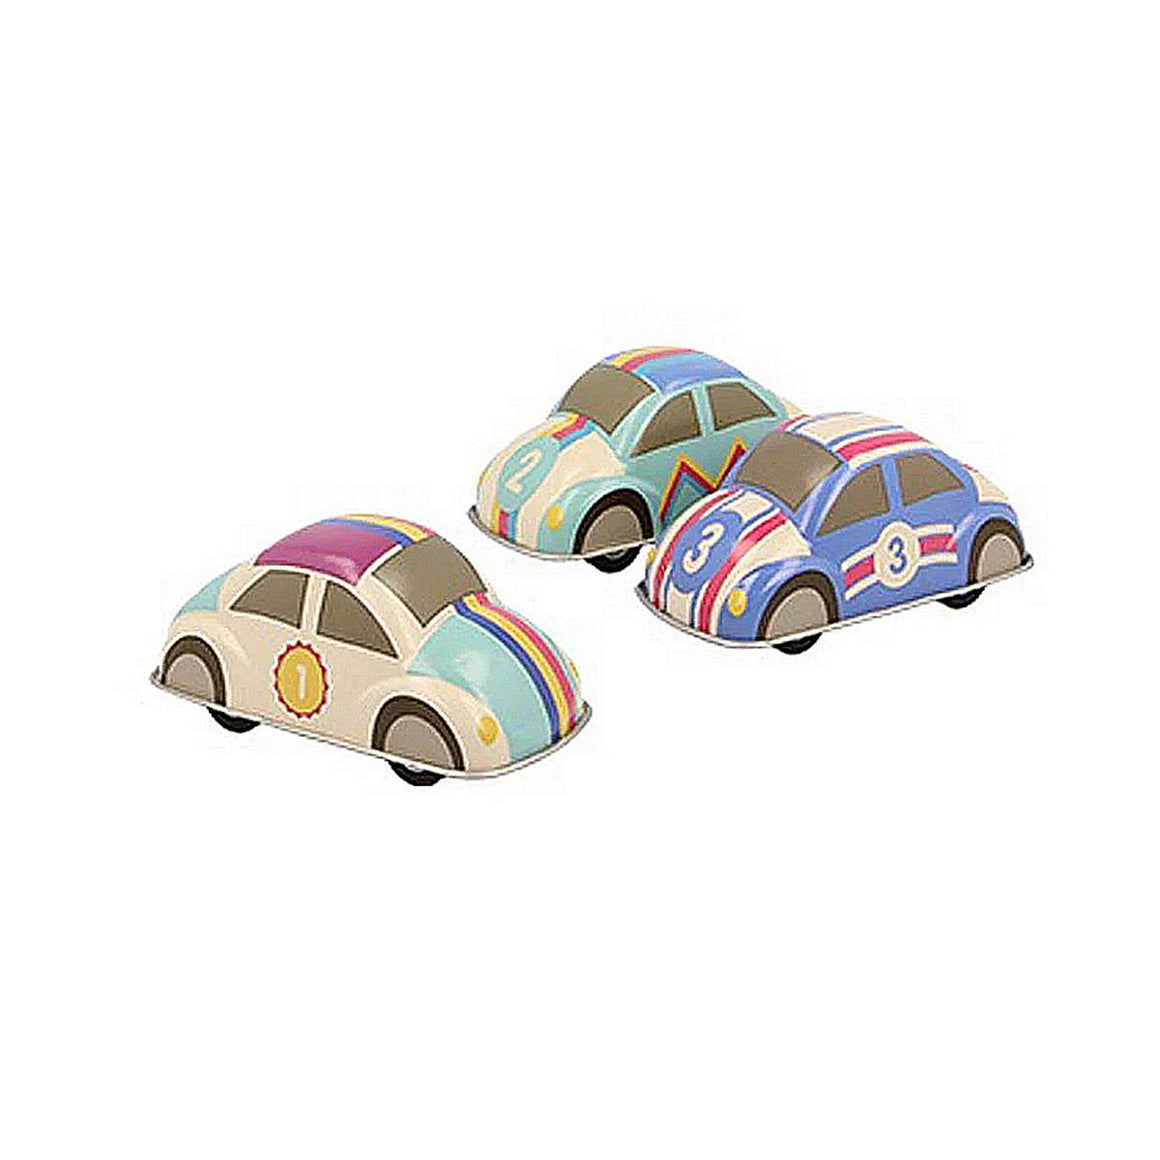 Three tin toy cars are shown in a group. In the Style of Volkswagon beetles, they are coloured in rainbow pastel tones, and are all marked with a number in the style of racing cars.